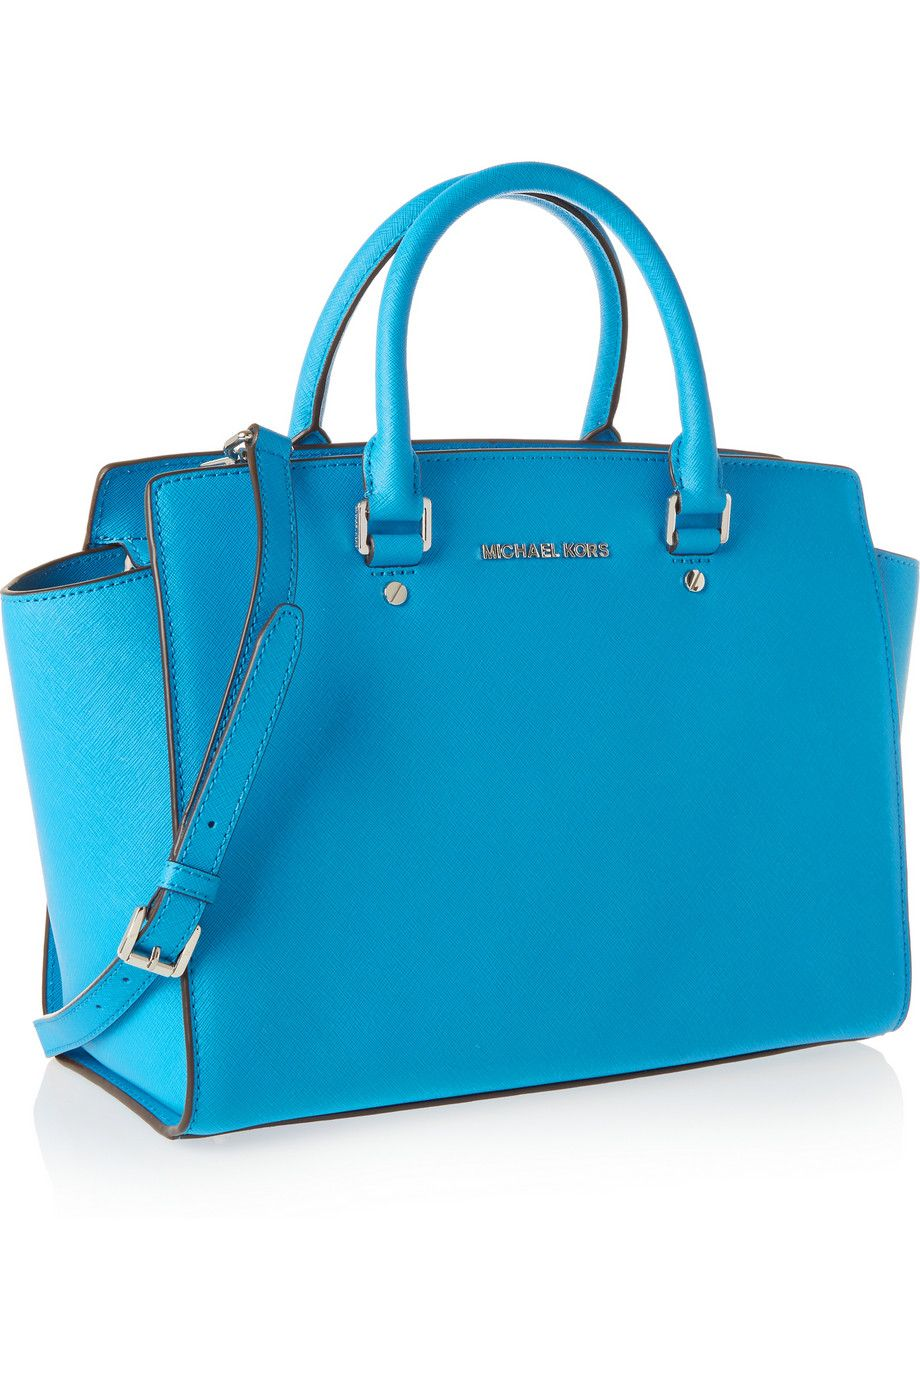 Add a bright splash of blue to any outfit with this MICHAEL